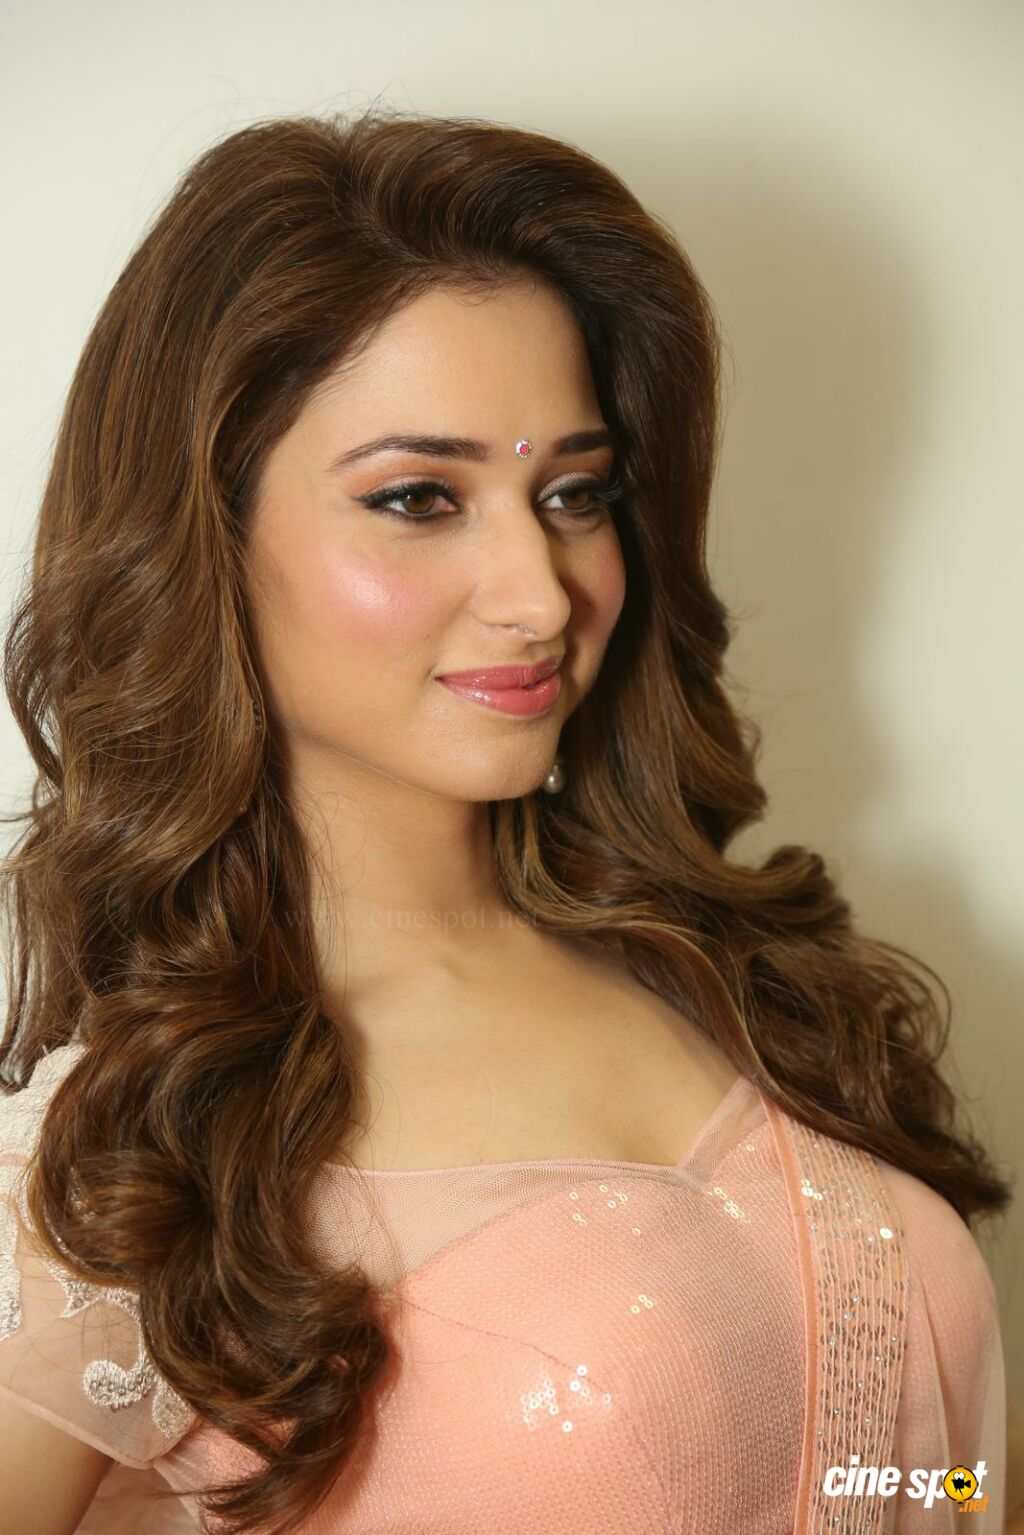 tamannaah bhatia actress photos